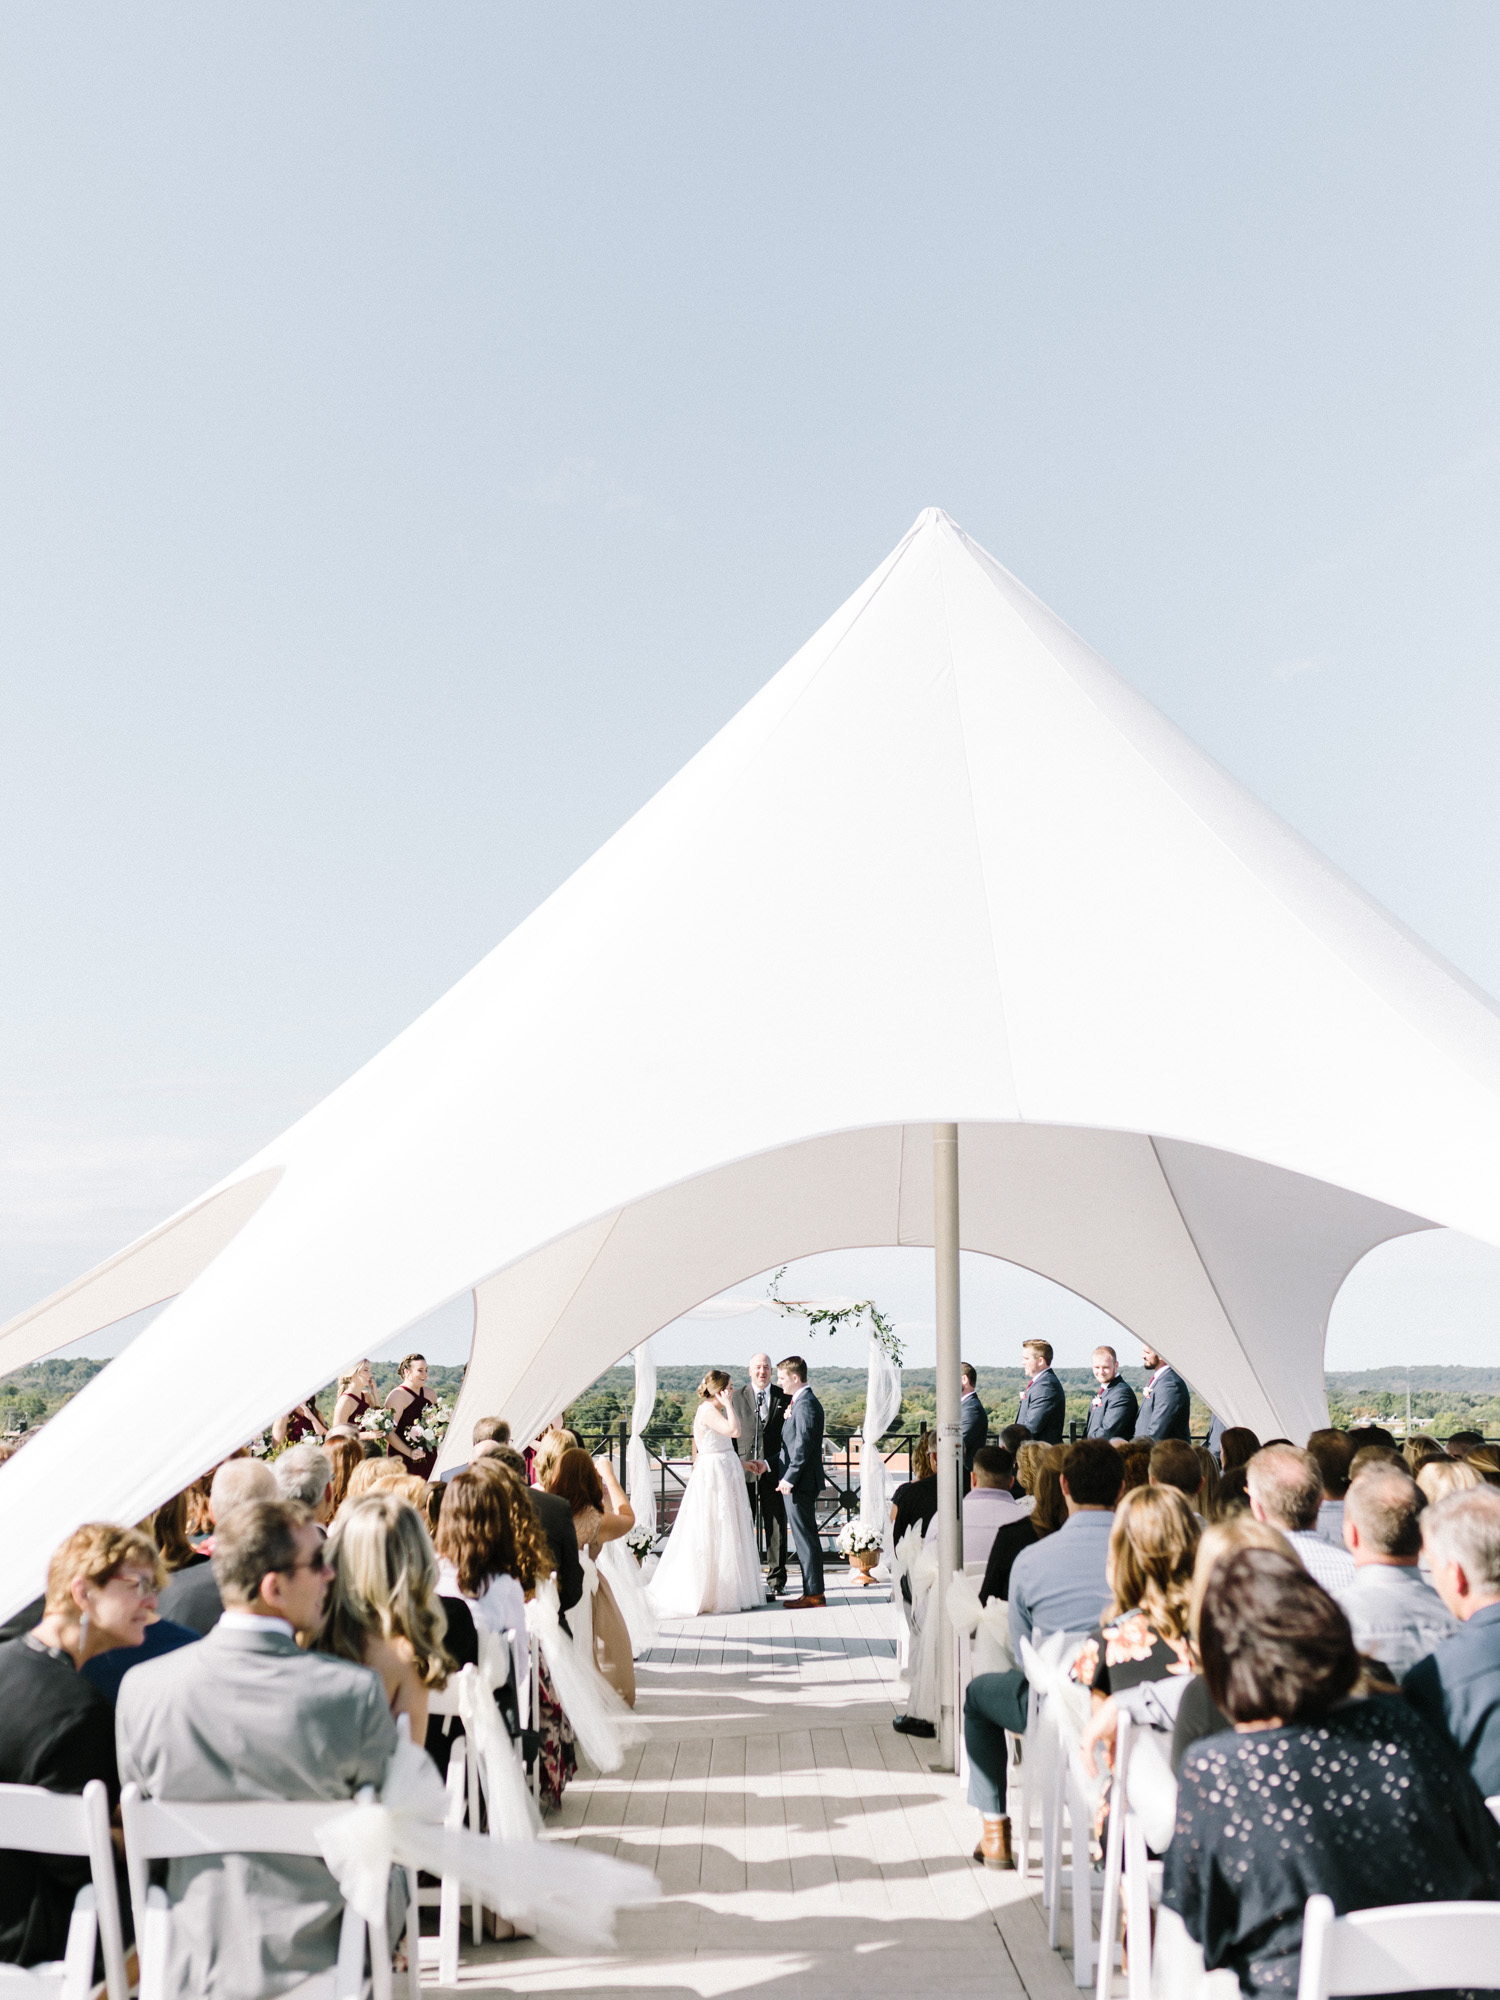 A tented wedding ceremony on the rooftop of Loft 310 in downtown Kalamazoo